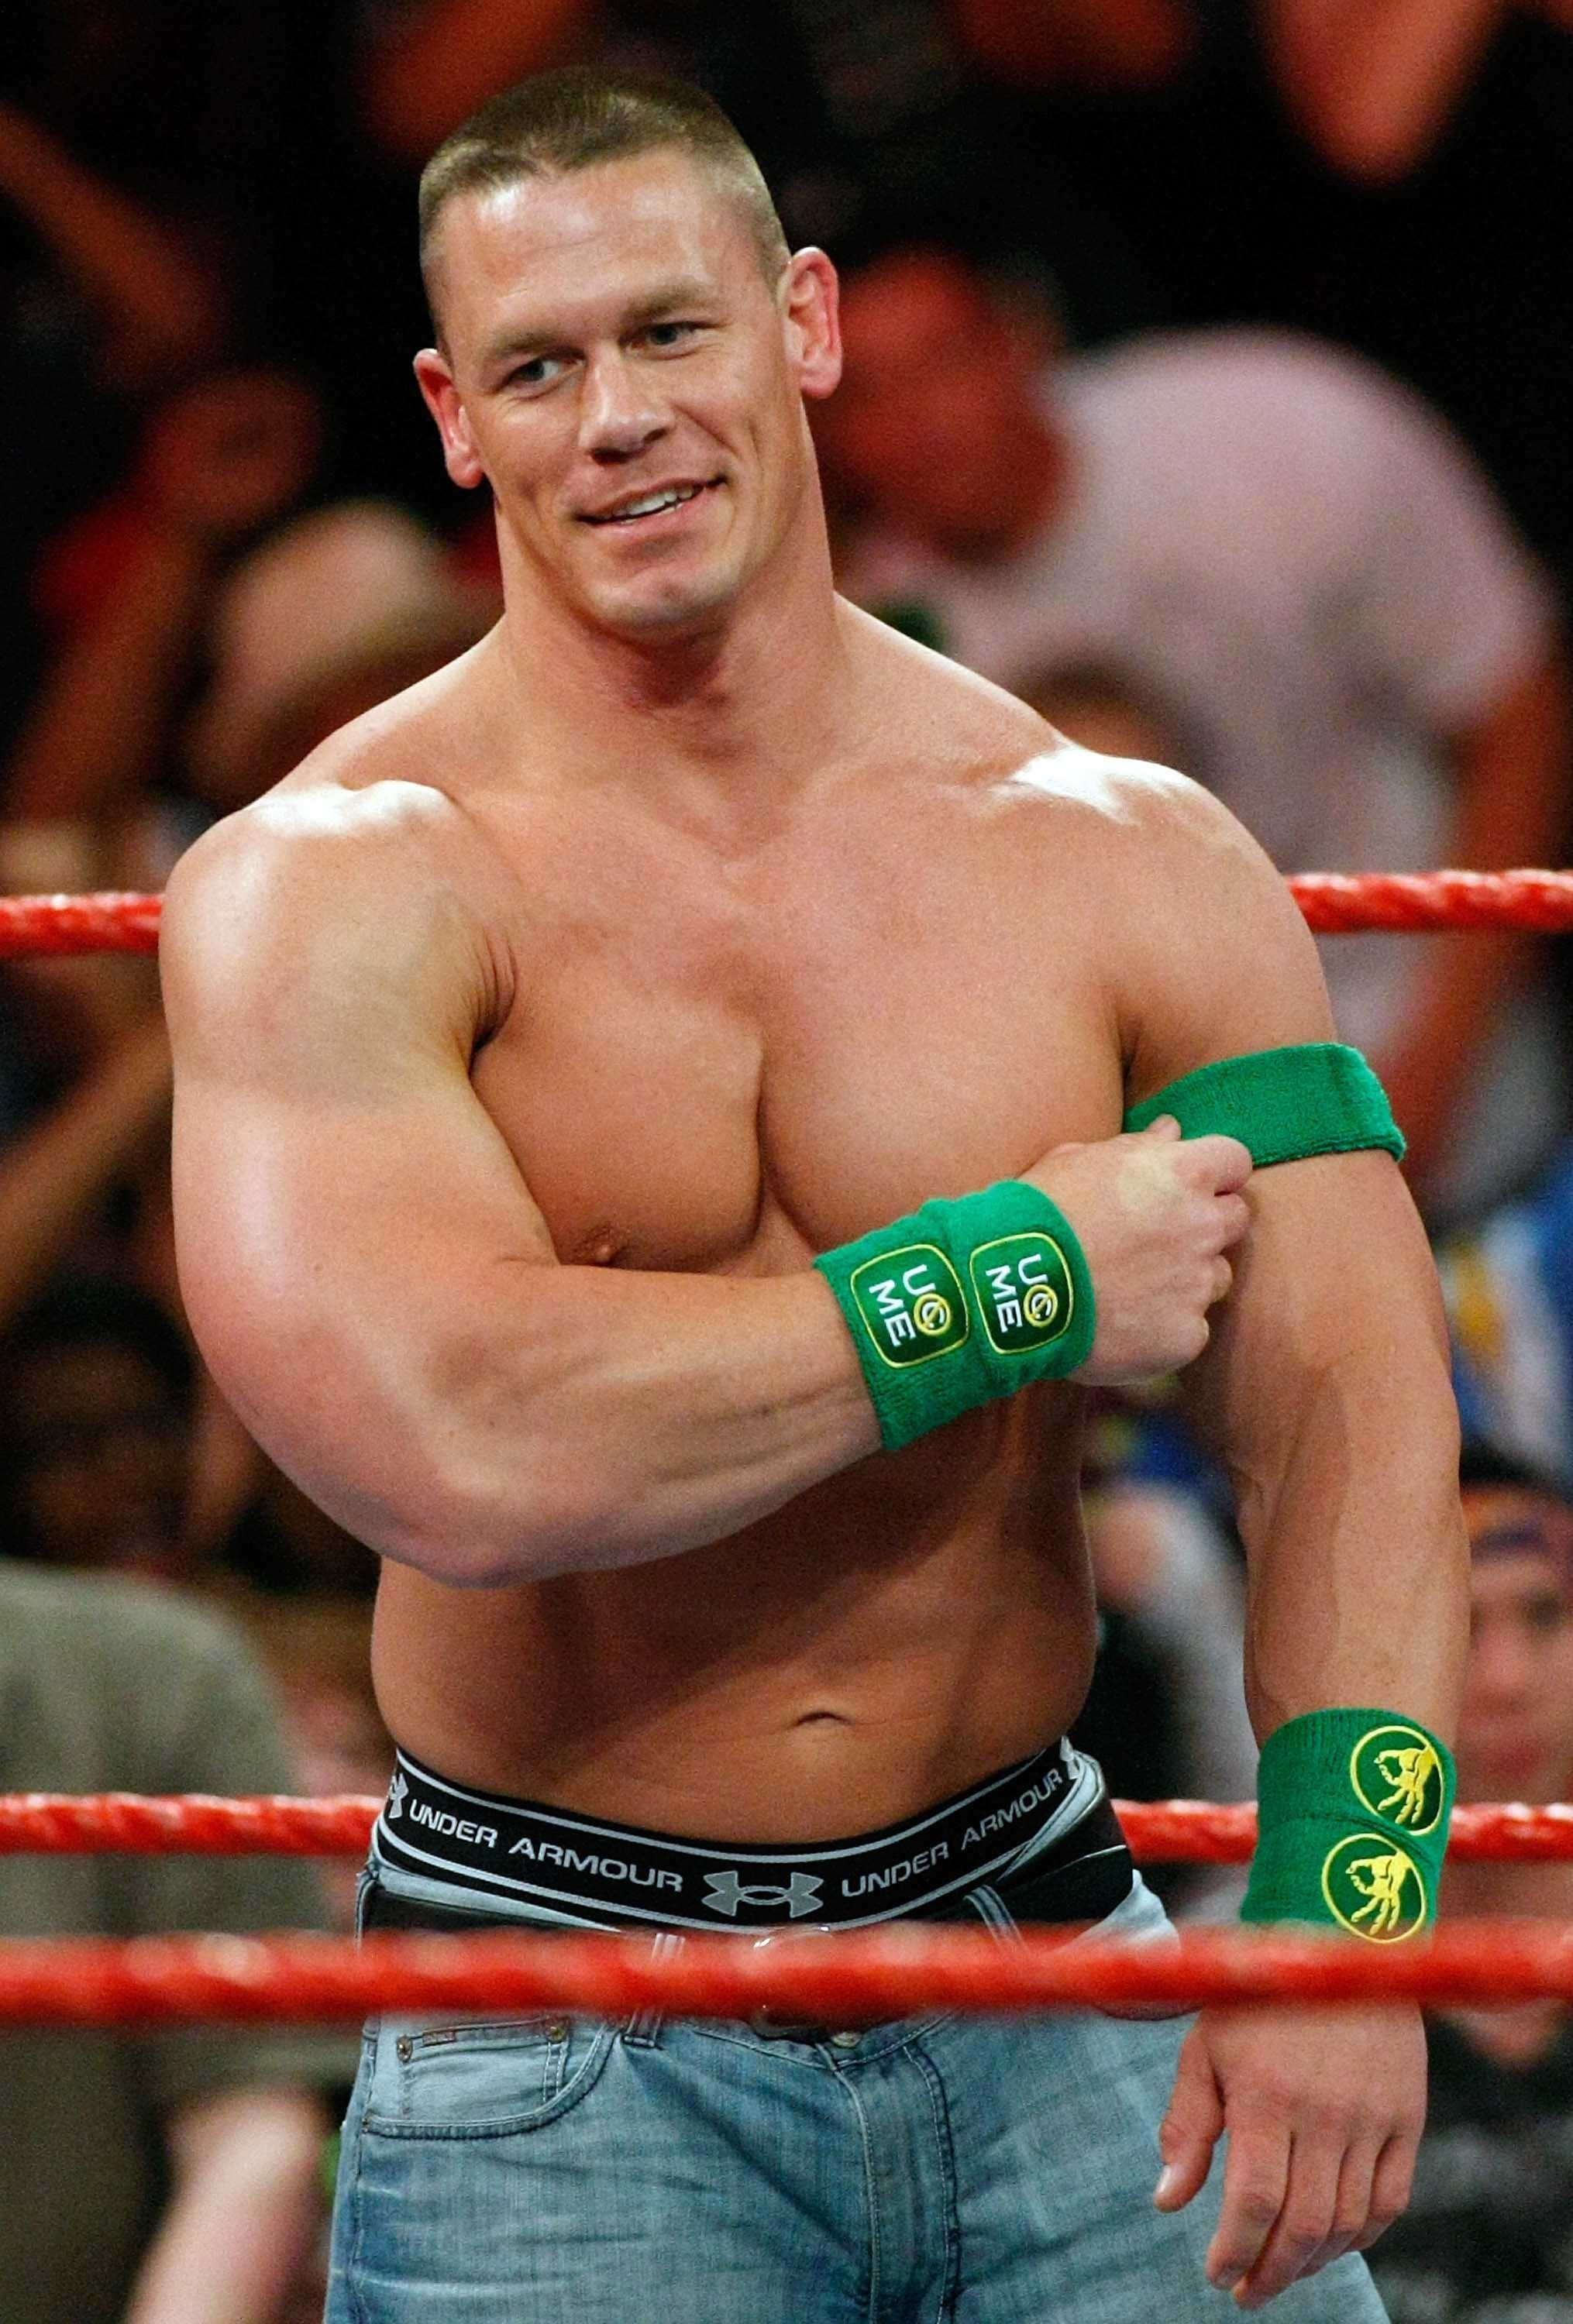 John Cena Wallpapers 2018 For Desktop Hd 65 Background Pictures